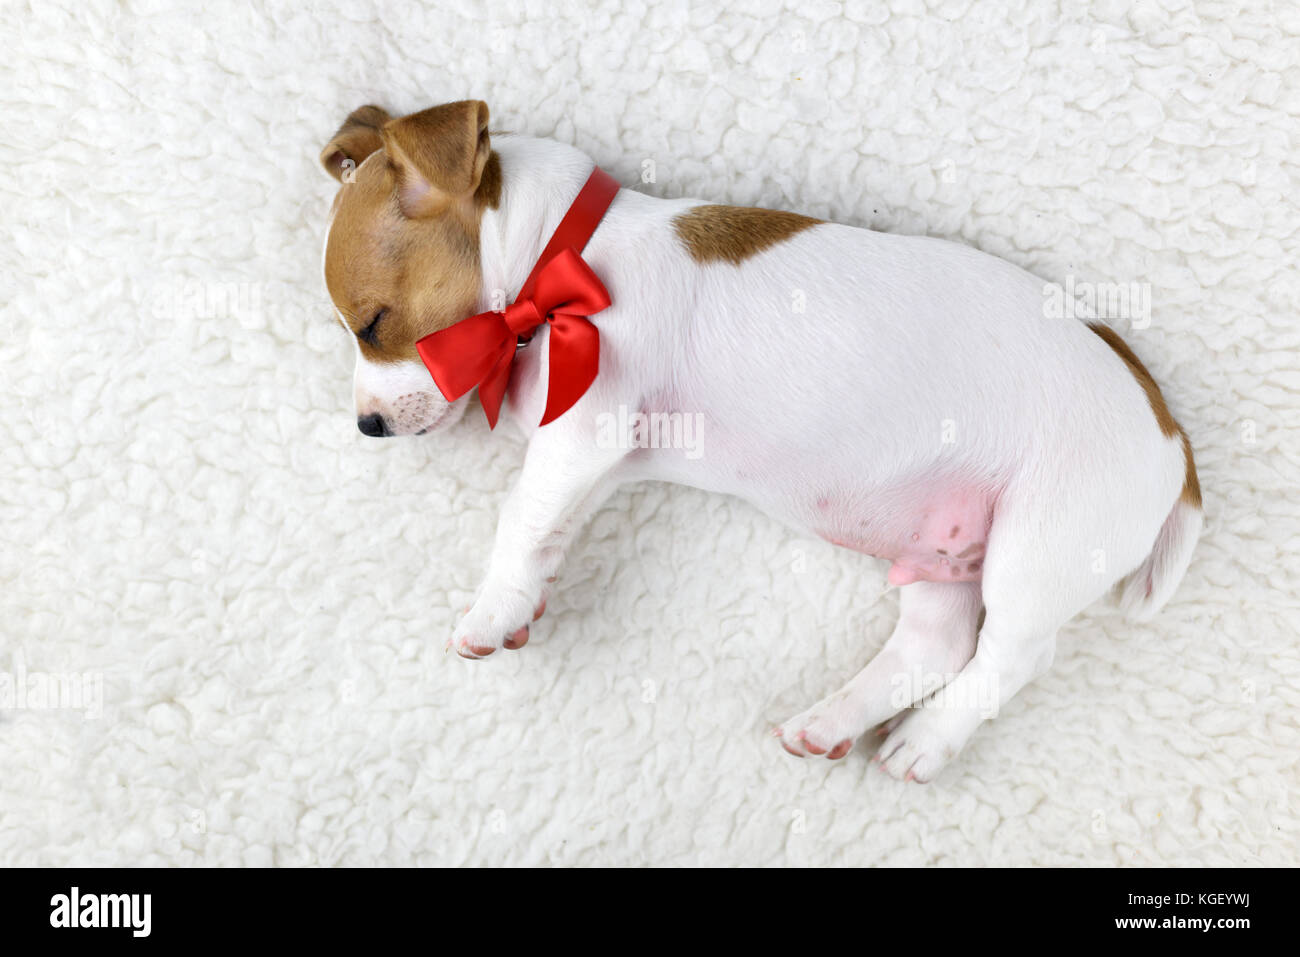 jack russel puppy with red bow - Stock Image